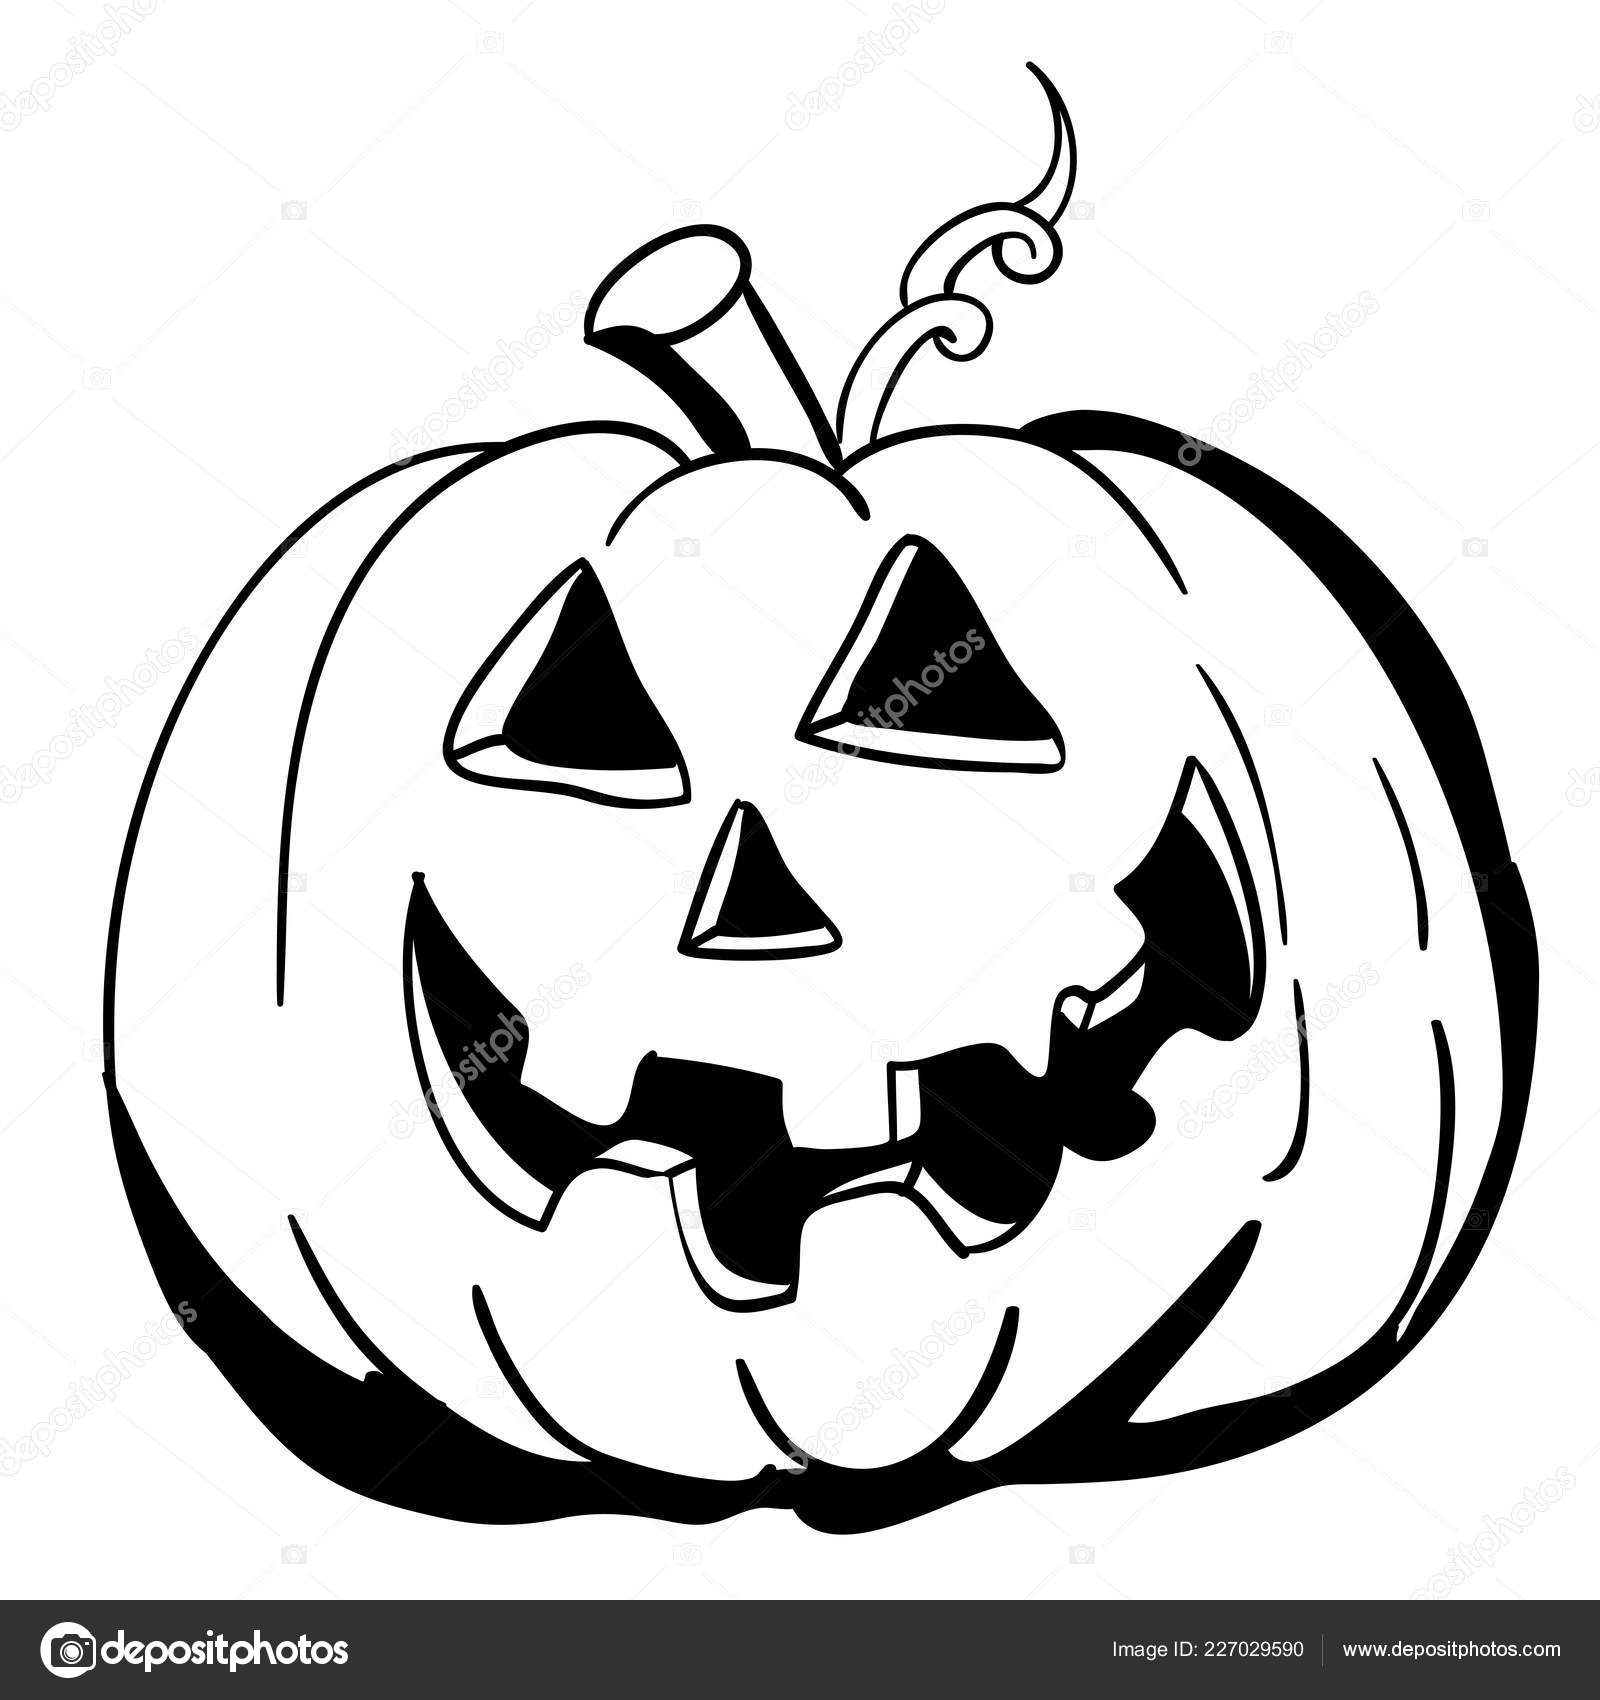 Pumpkin cartoon black and white | Black White Halloween ... |Cartoon Black And White Pumkin